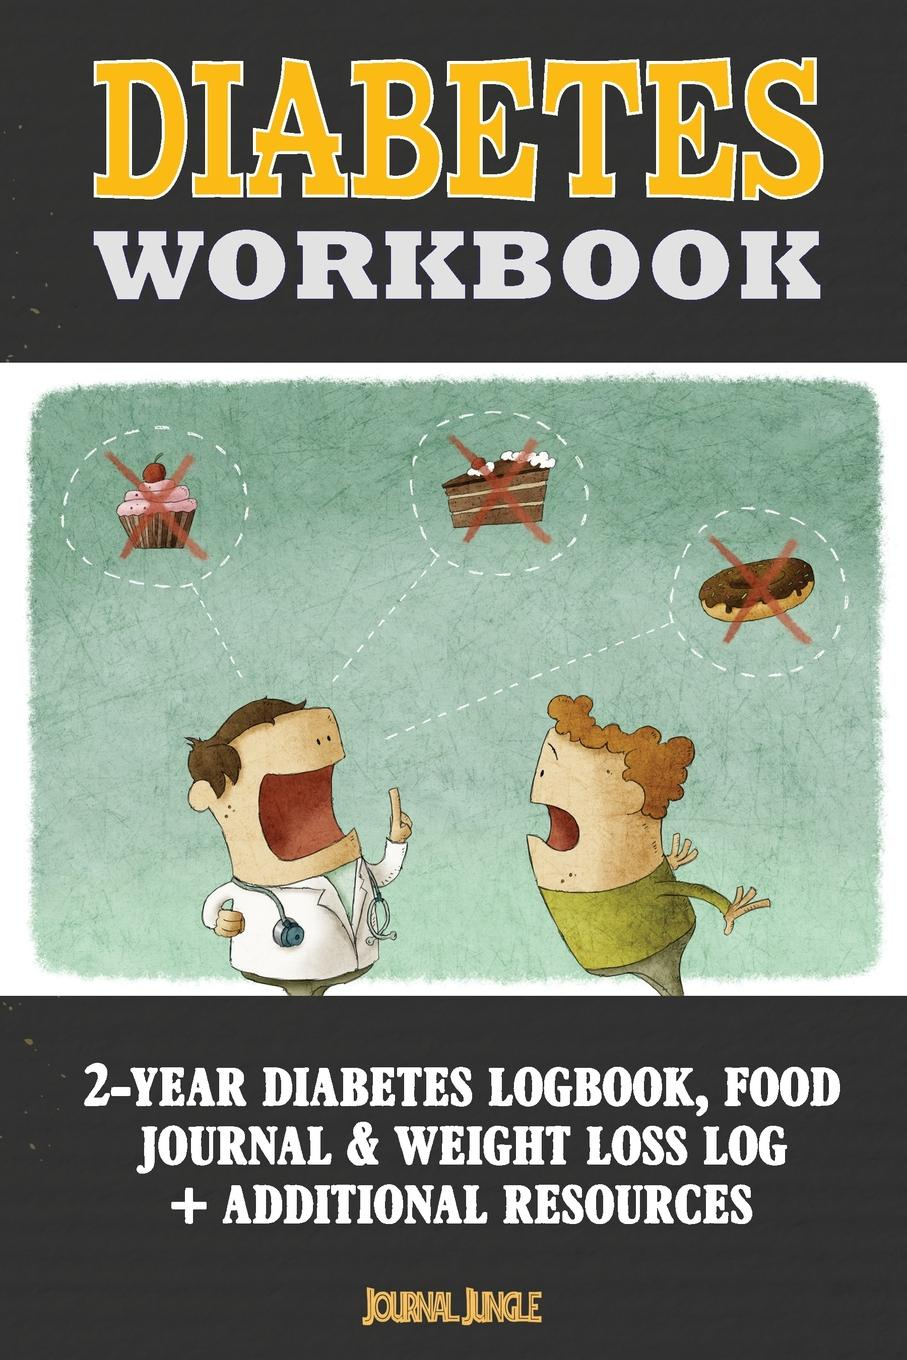 Journal Jungle Publishing Diabetes Workbook. 24-Month Diabetes Self Management Workbook (Contains Blood Sugar Log, Weight Loss Log, Nutrient Guide, Calorie Expenditure Table, Daily Calorie Needs List and Medications List (6x9 Inches - Portable) 3 inches of blood 3 inches of blood long live heavy metal